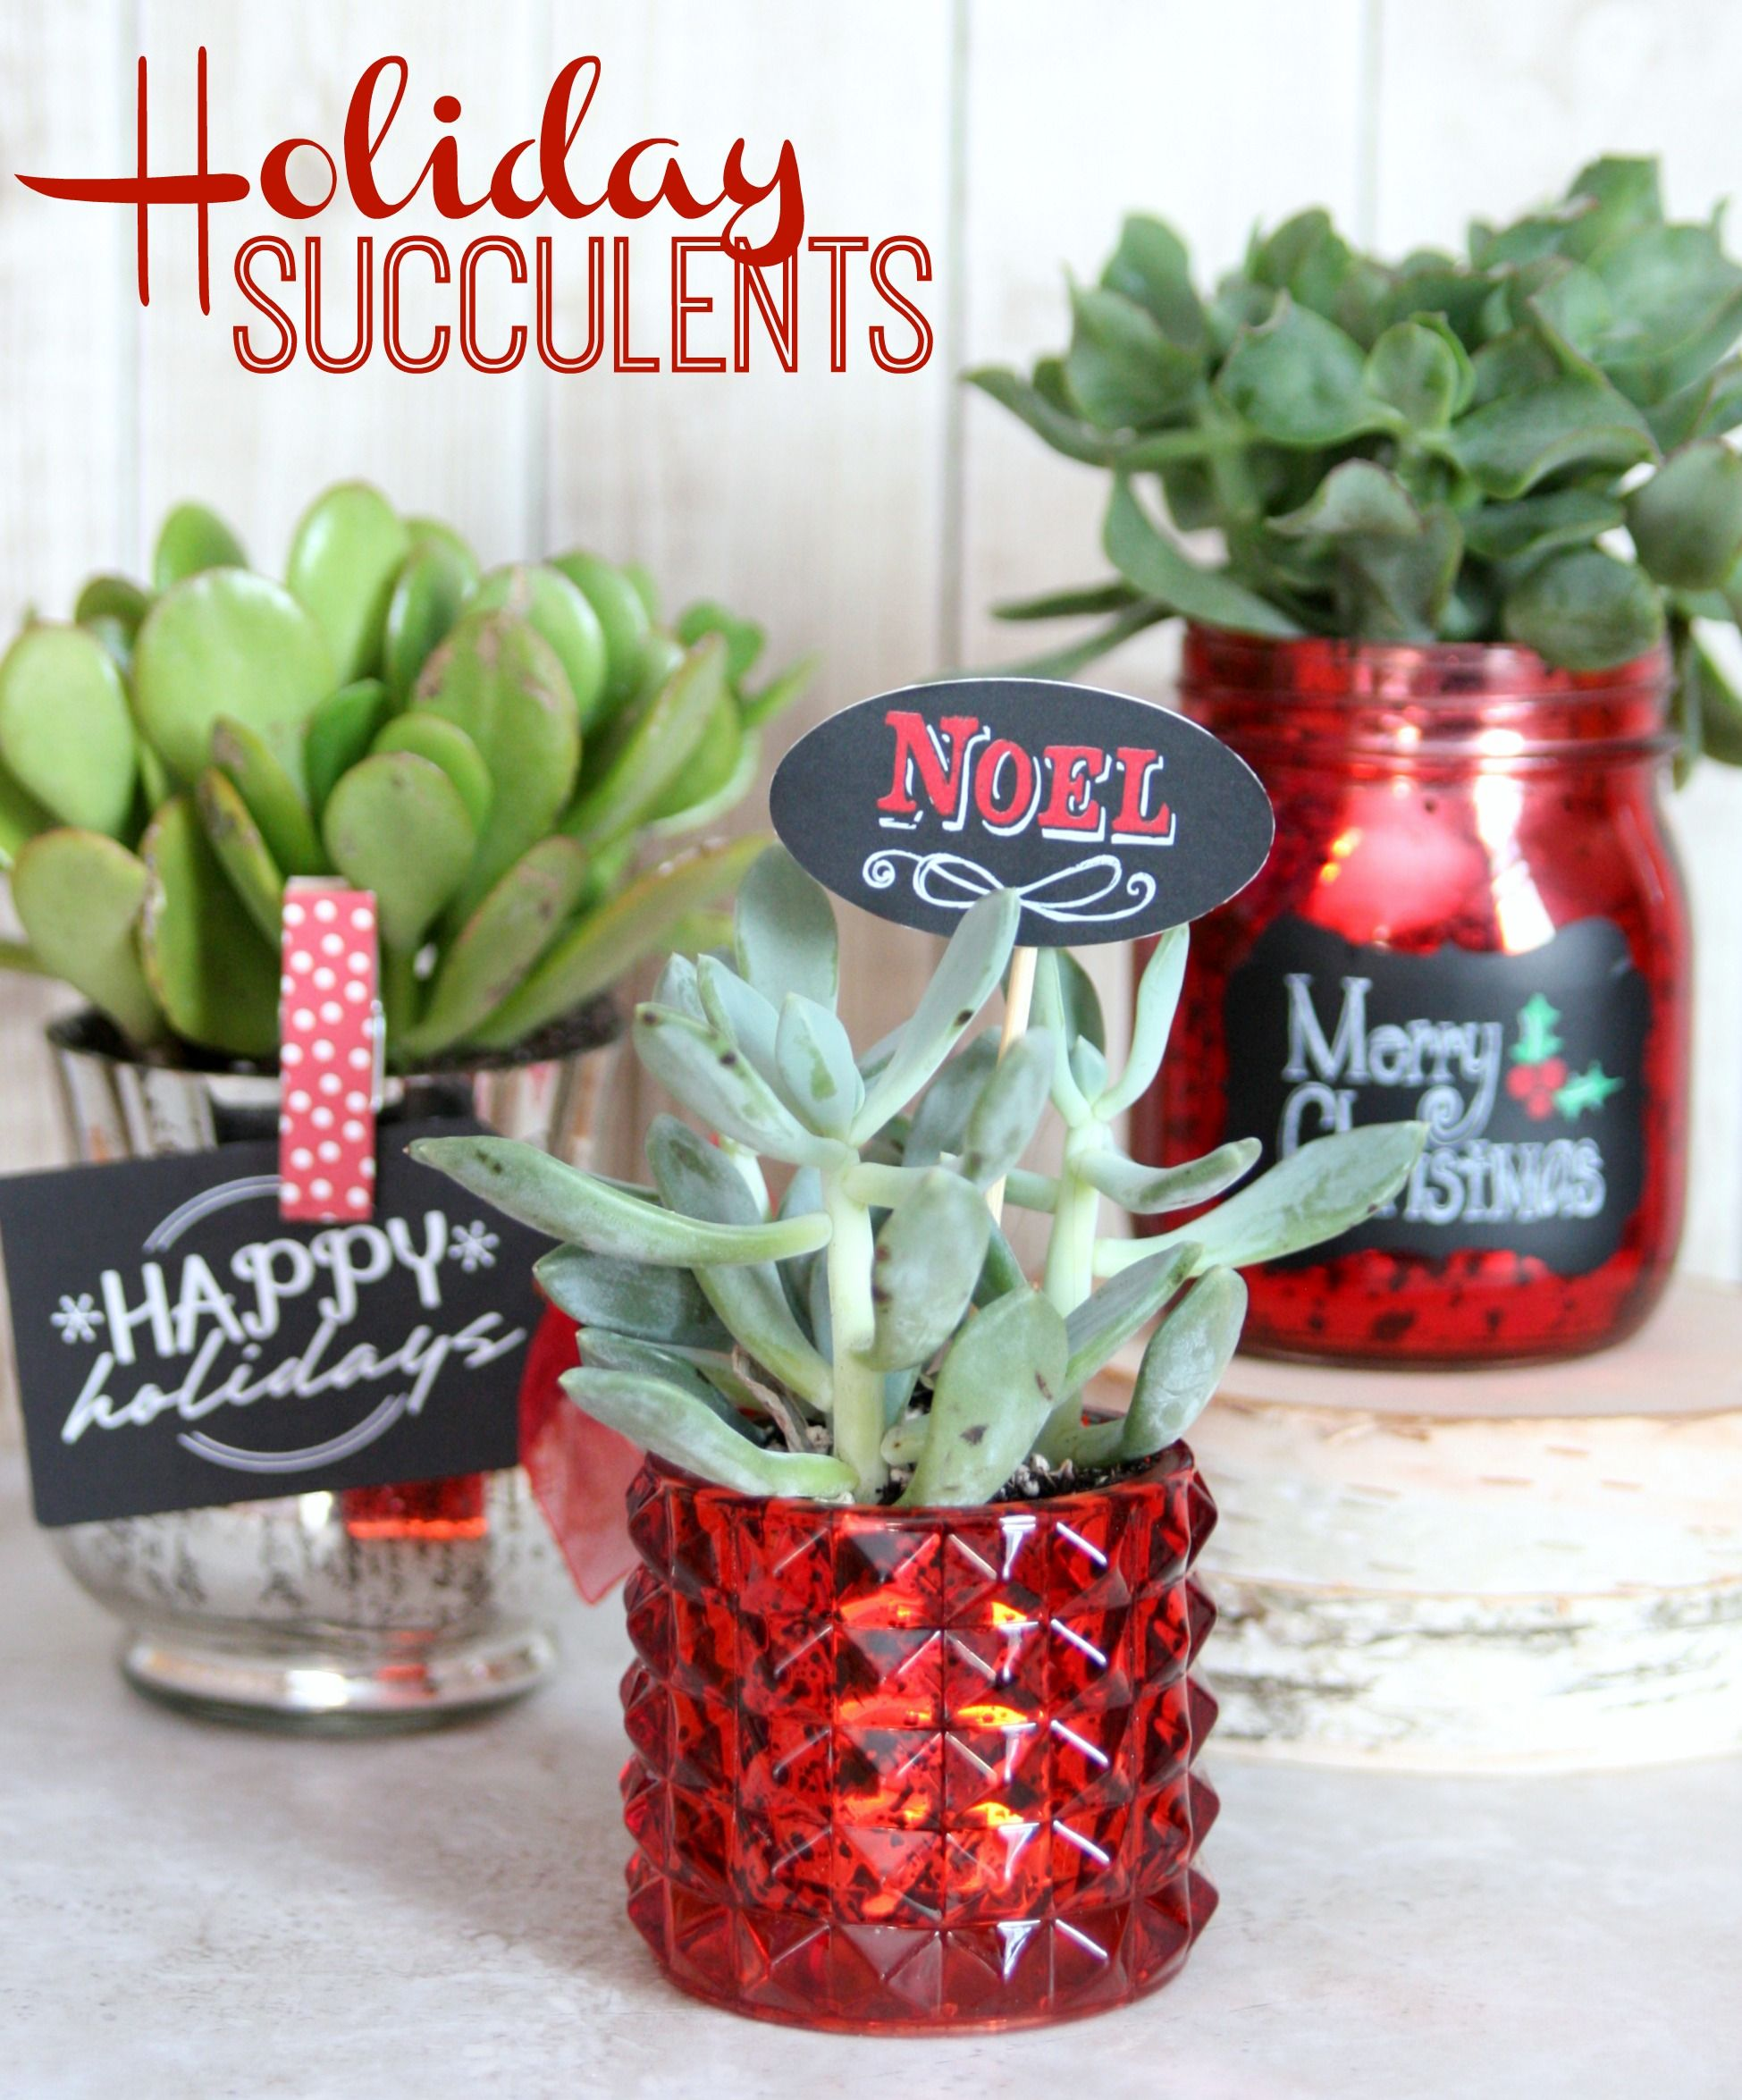 Christmas Succulent Gift Ideas.Holiday Succulents Handmade Gift Ideas Inexpensive